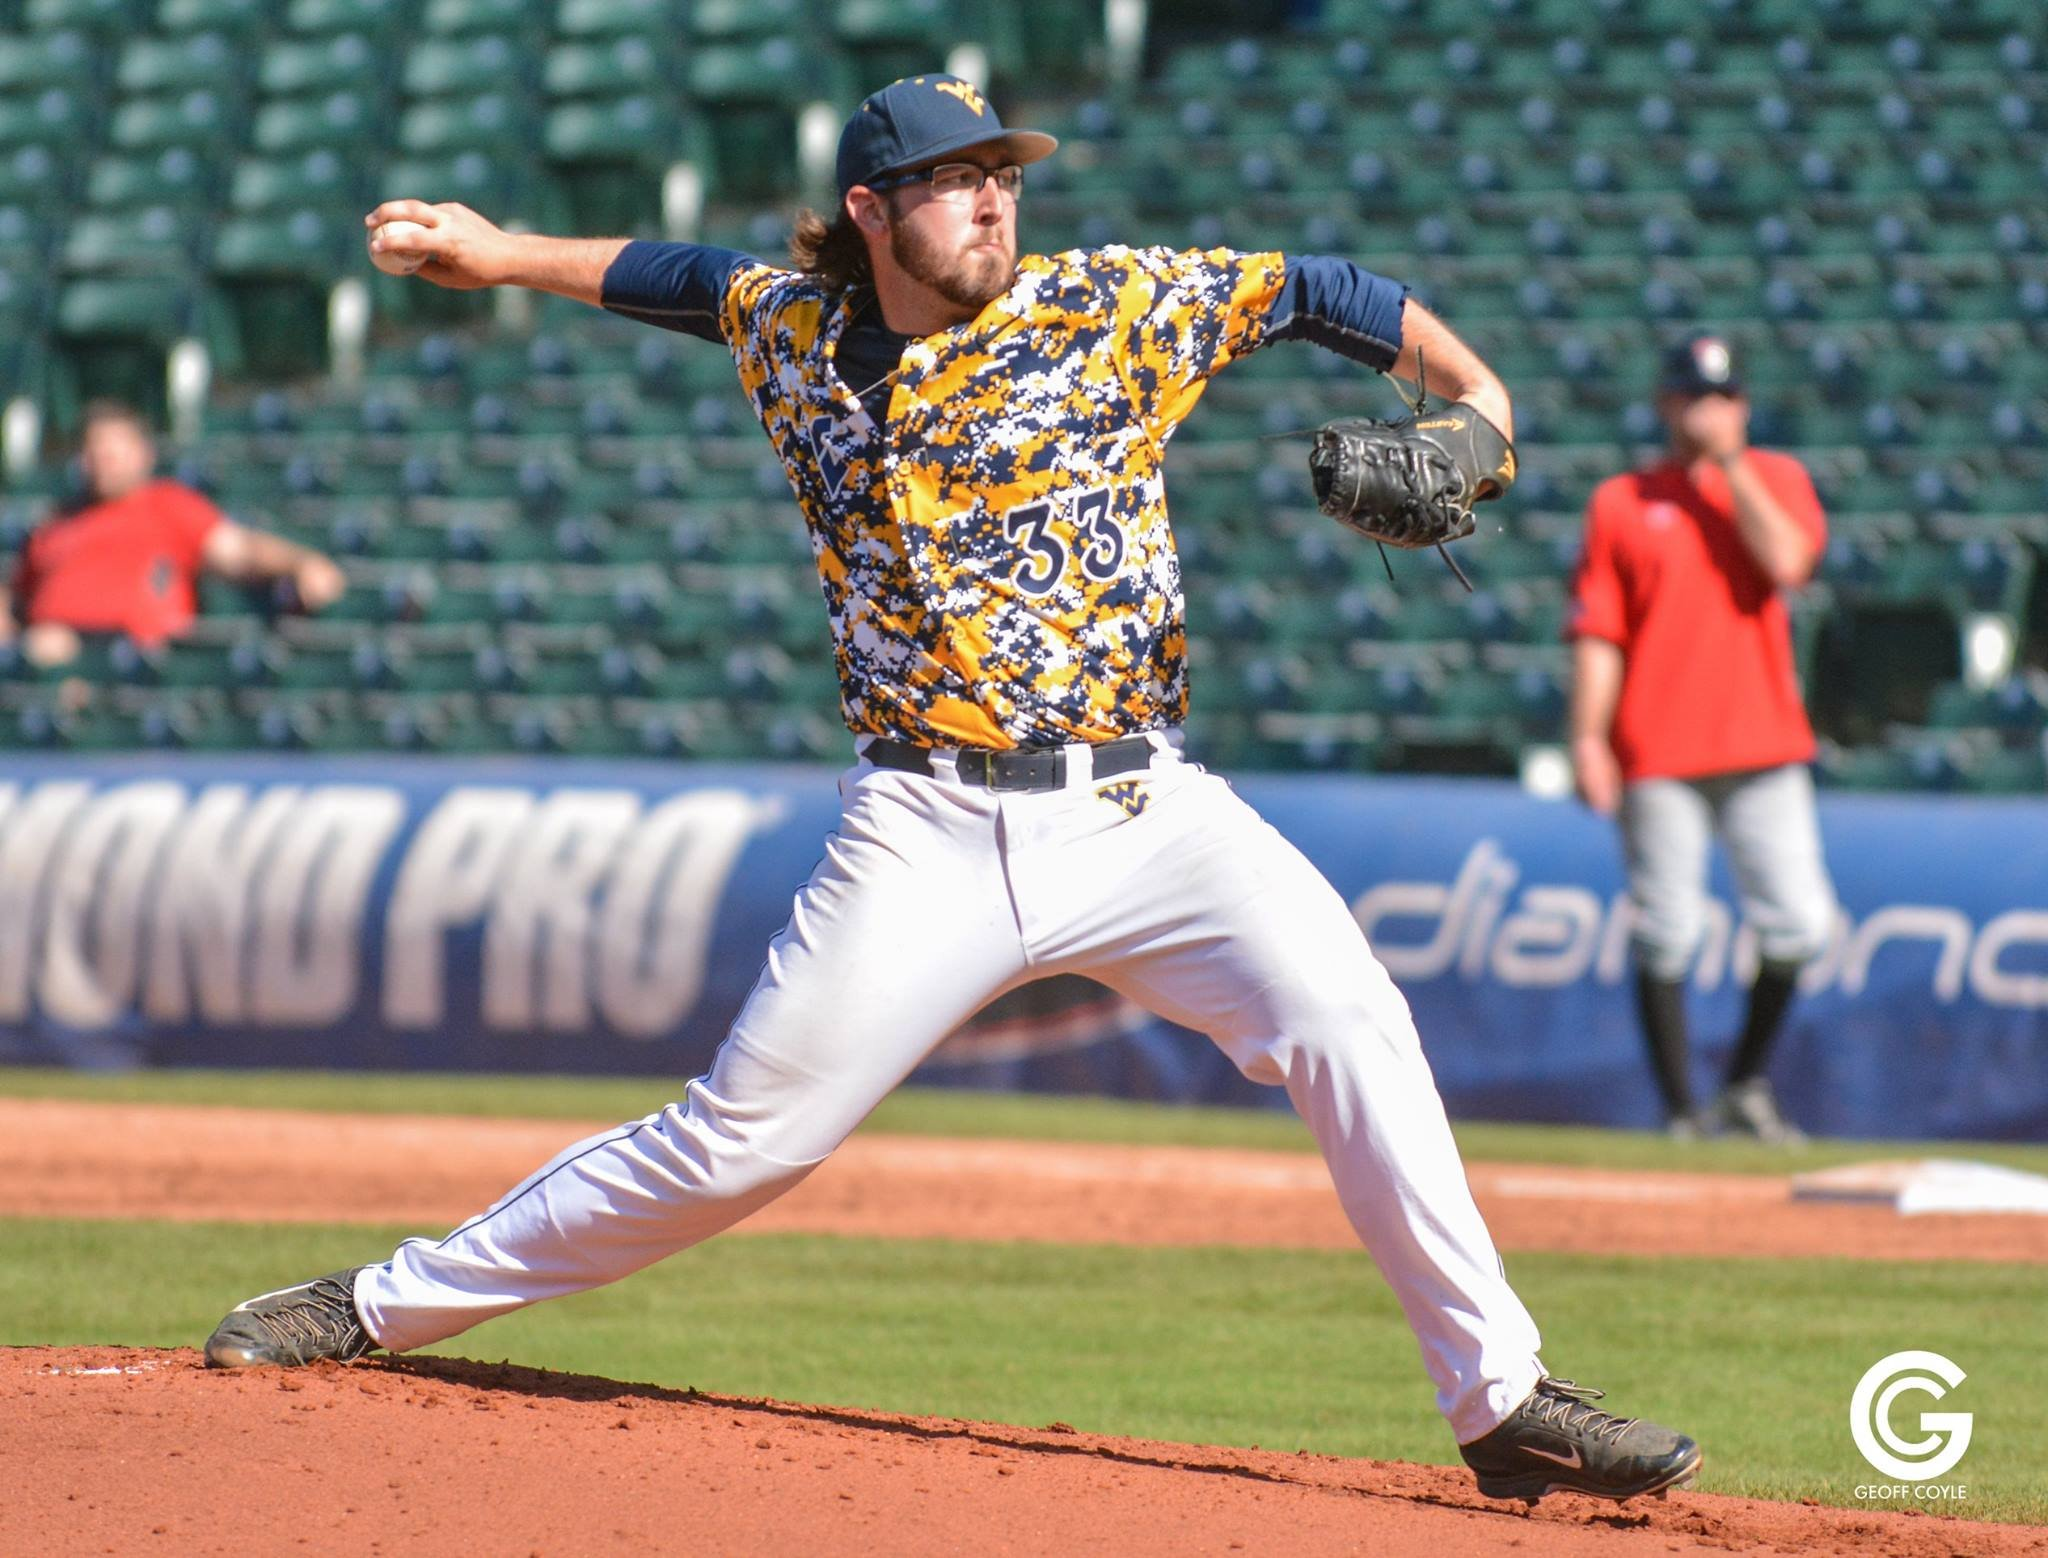 BJ Myers hurls a pitch for WVU. (PHOTO: Geoff Coyle)